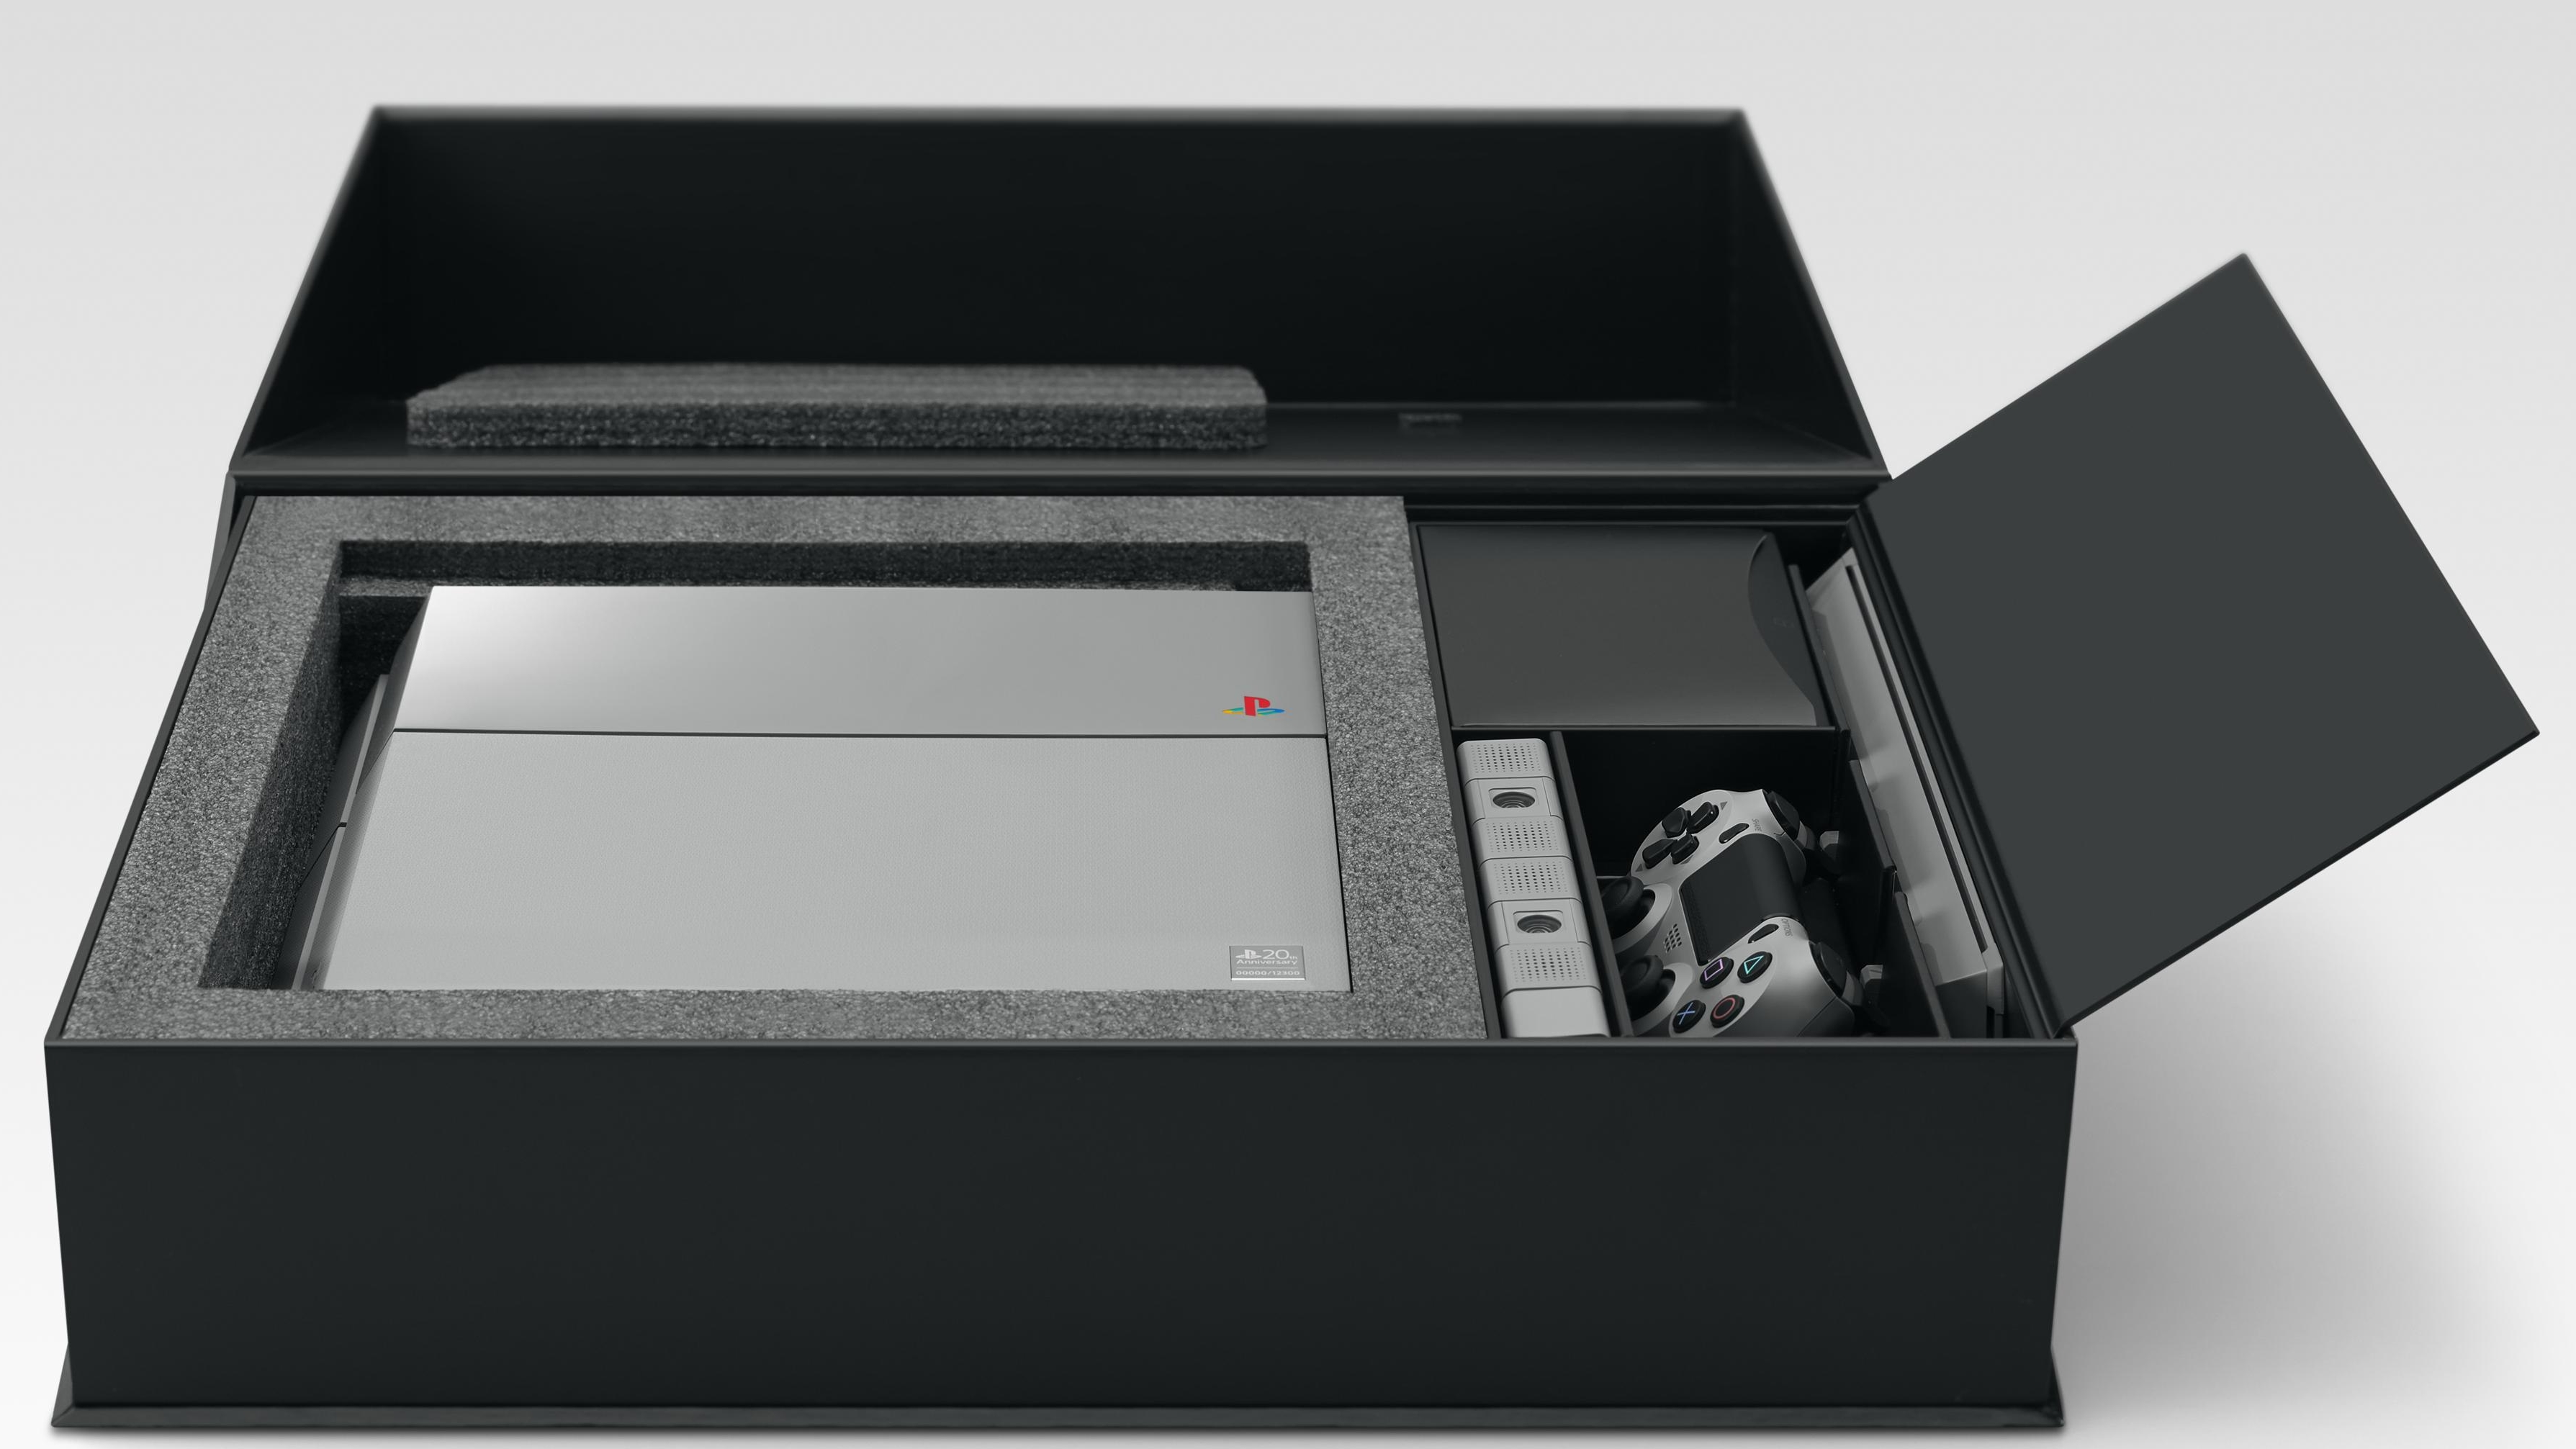 20th anniversary edition ps4 goes on sale for expert reviews - Playstation one console for sale ...